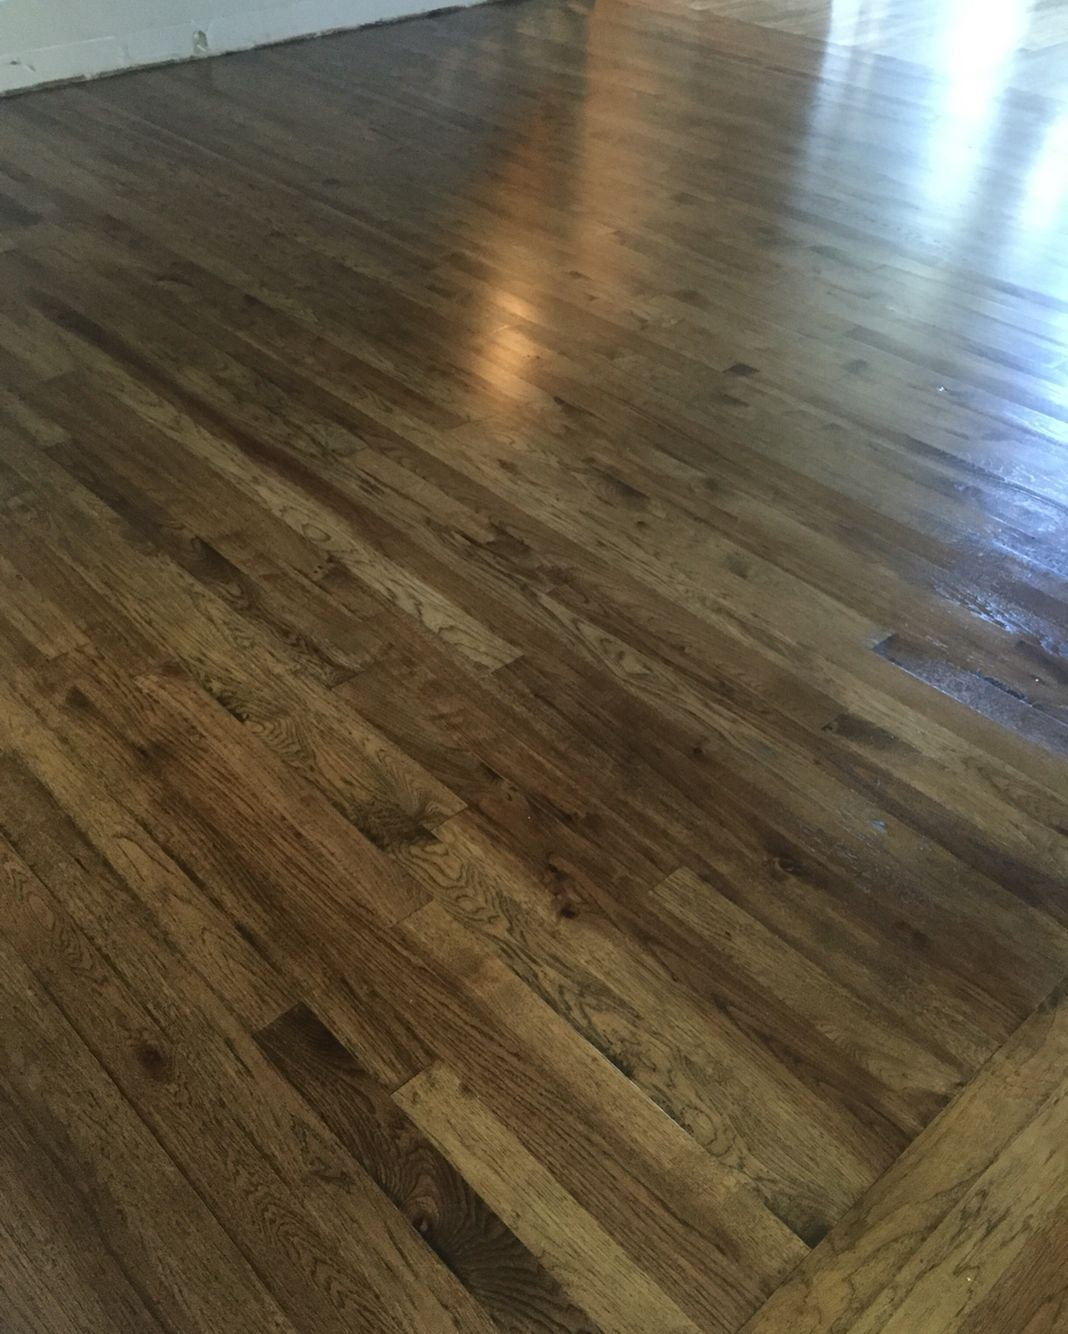 3 In Hickory Wood Floor Jacobean Minwax Stain Minwax Satin Poly Oil Based 2 Coats Hickory Wood Floors Hickory Flooring Hickory Hardwood Floors